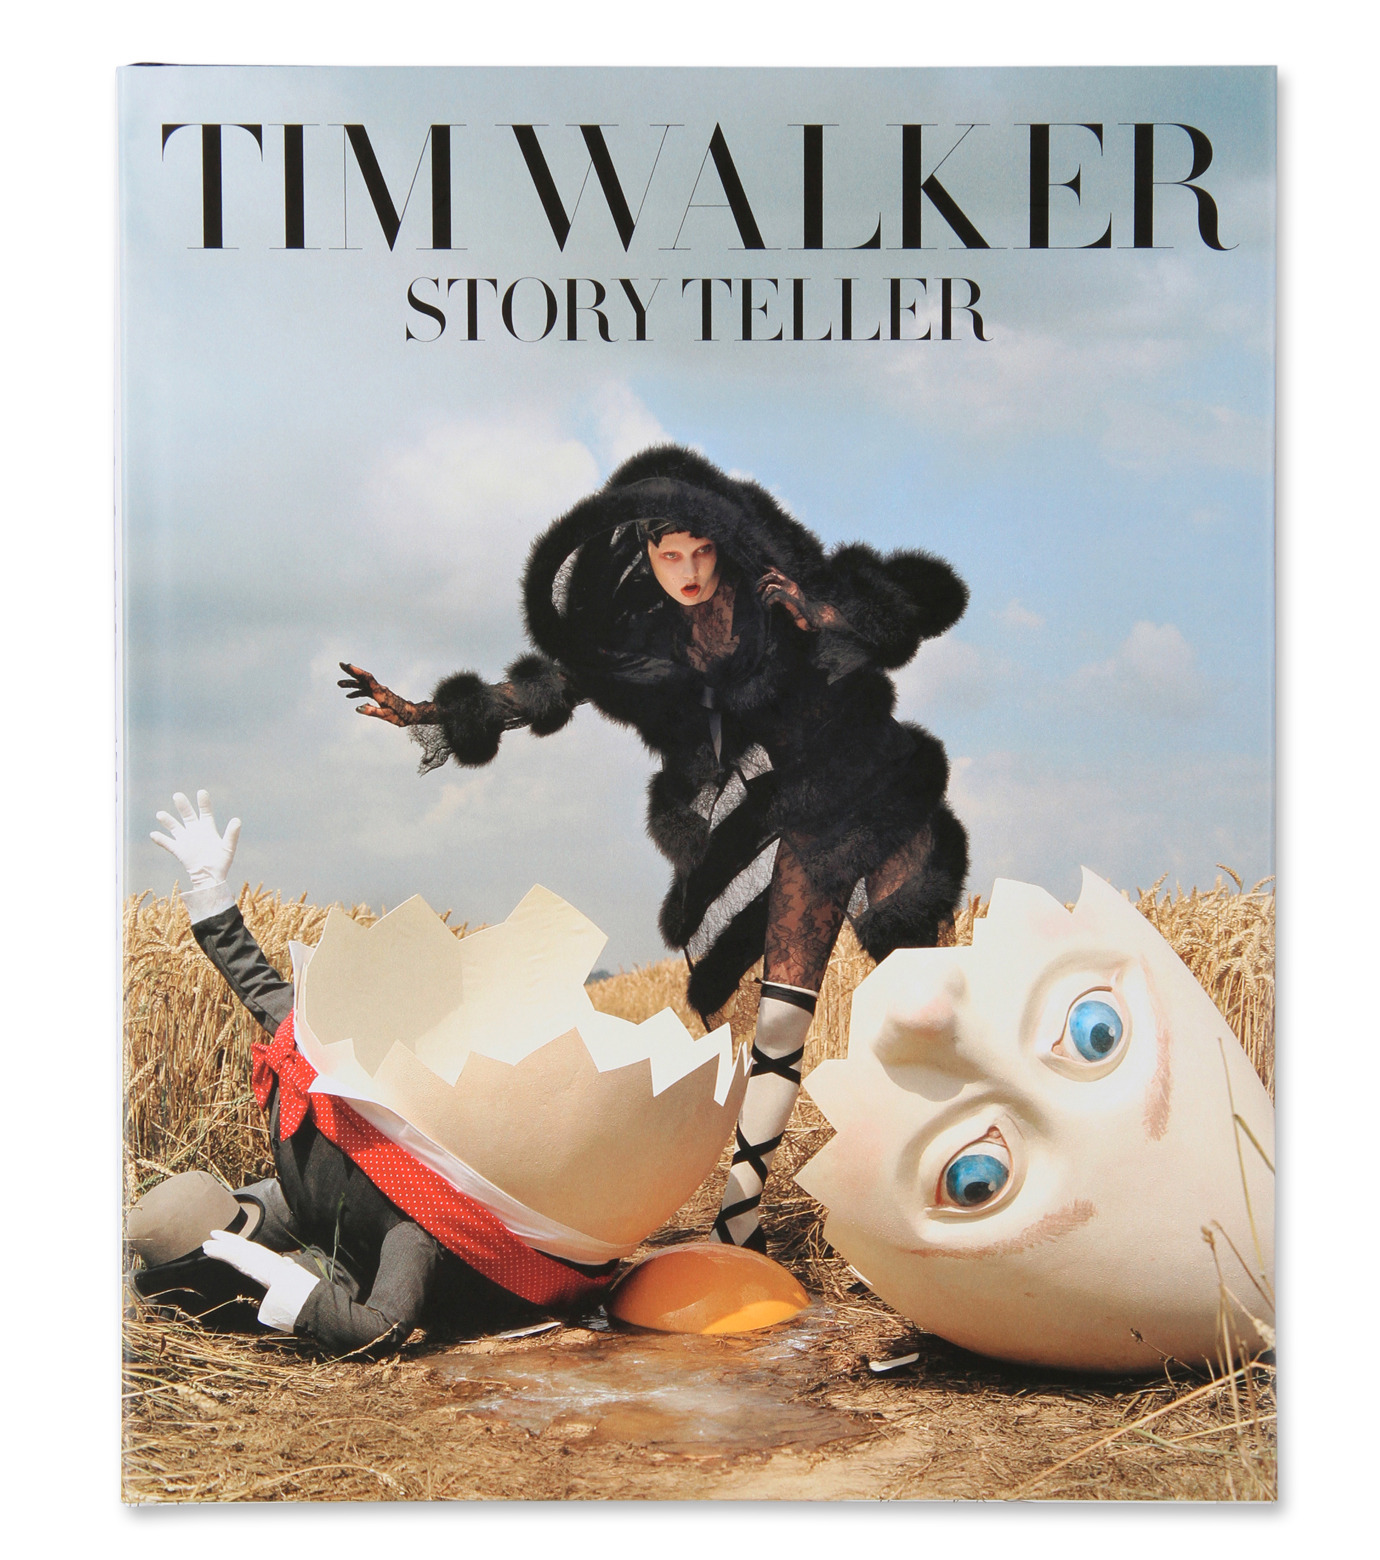 ArtBook(アートブック)のTim walker: story teller.-NONE(インテリア/OTHER-GOODS/interior/OTHER-GOODS)-500-54420-4-0 拡大詳細画像1